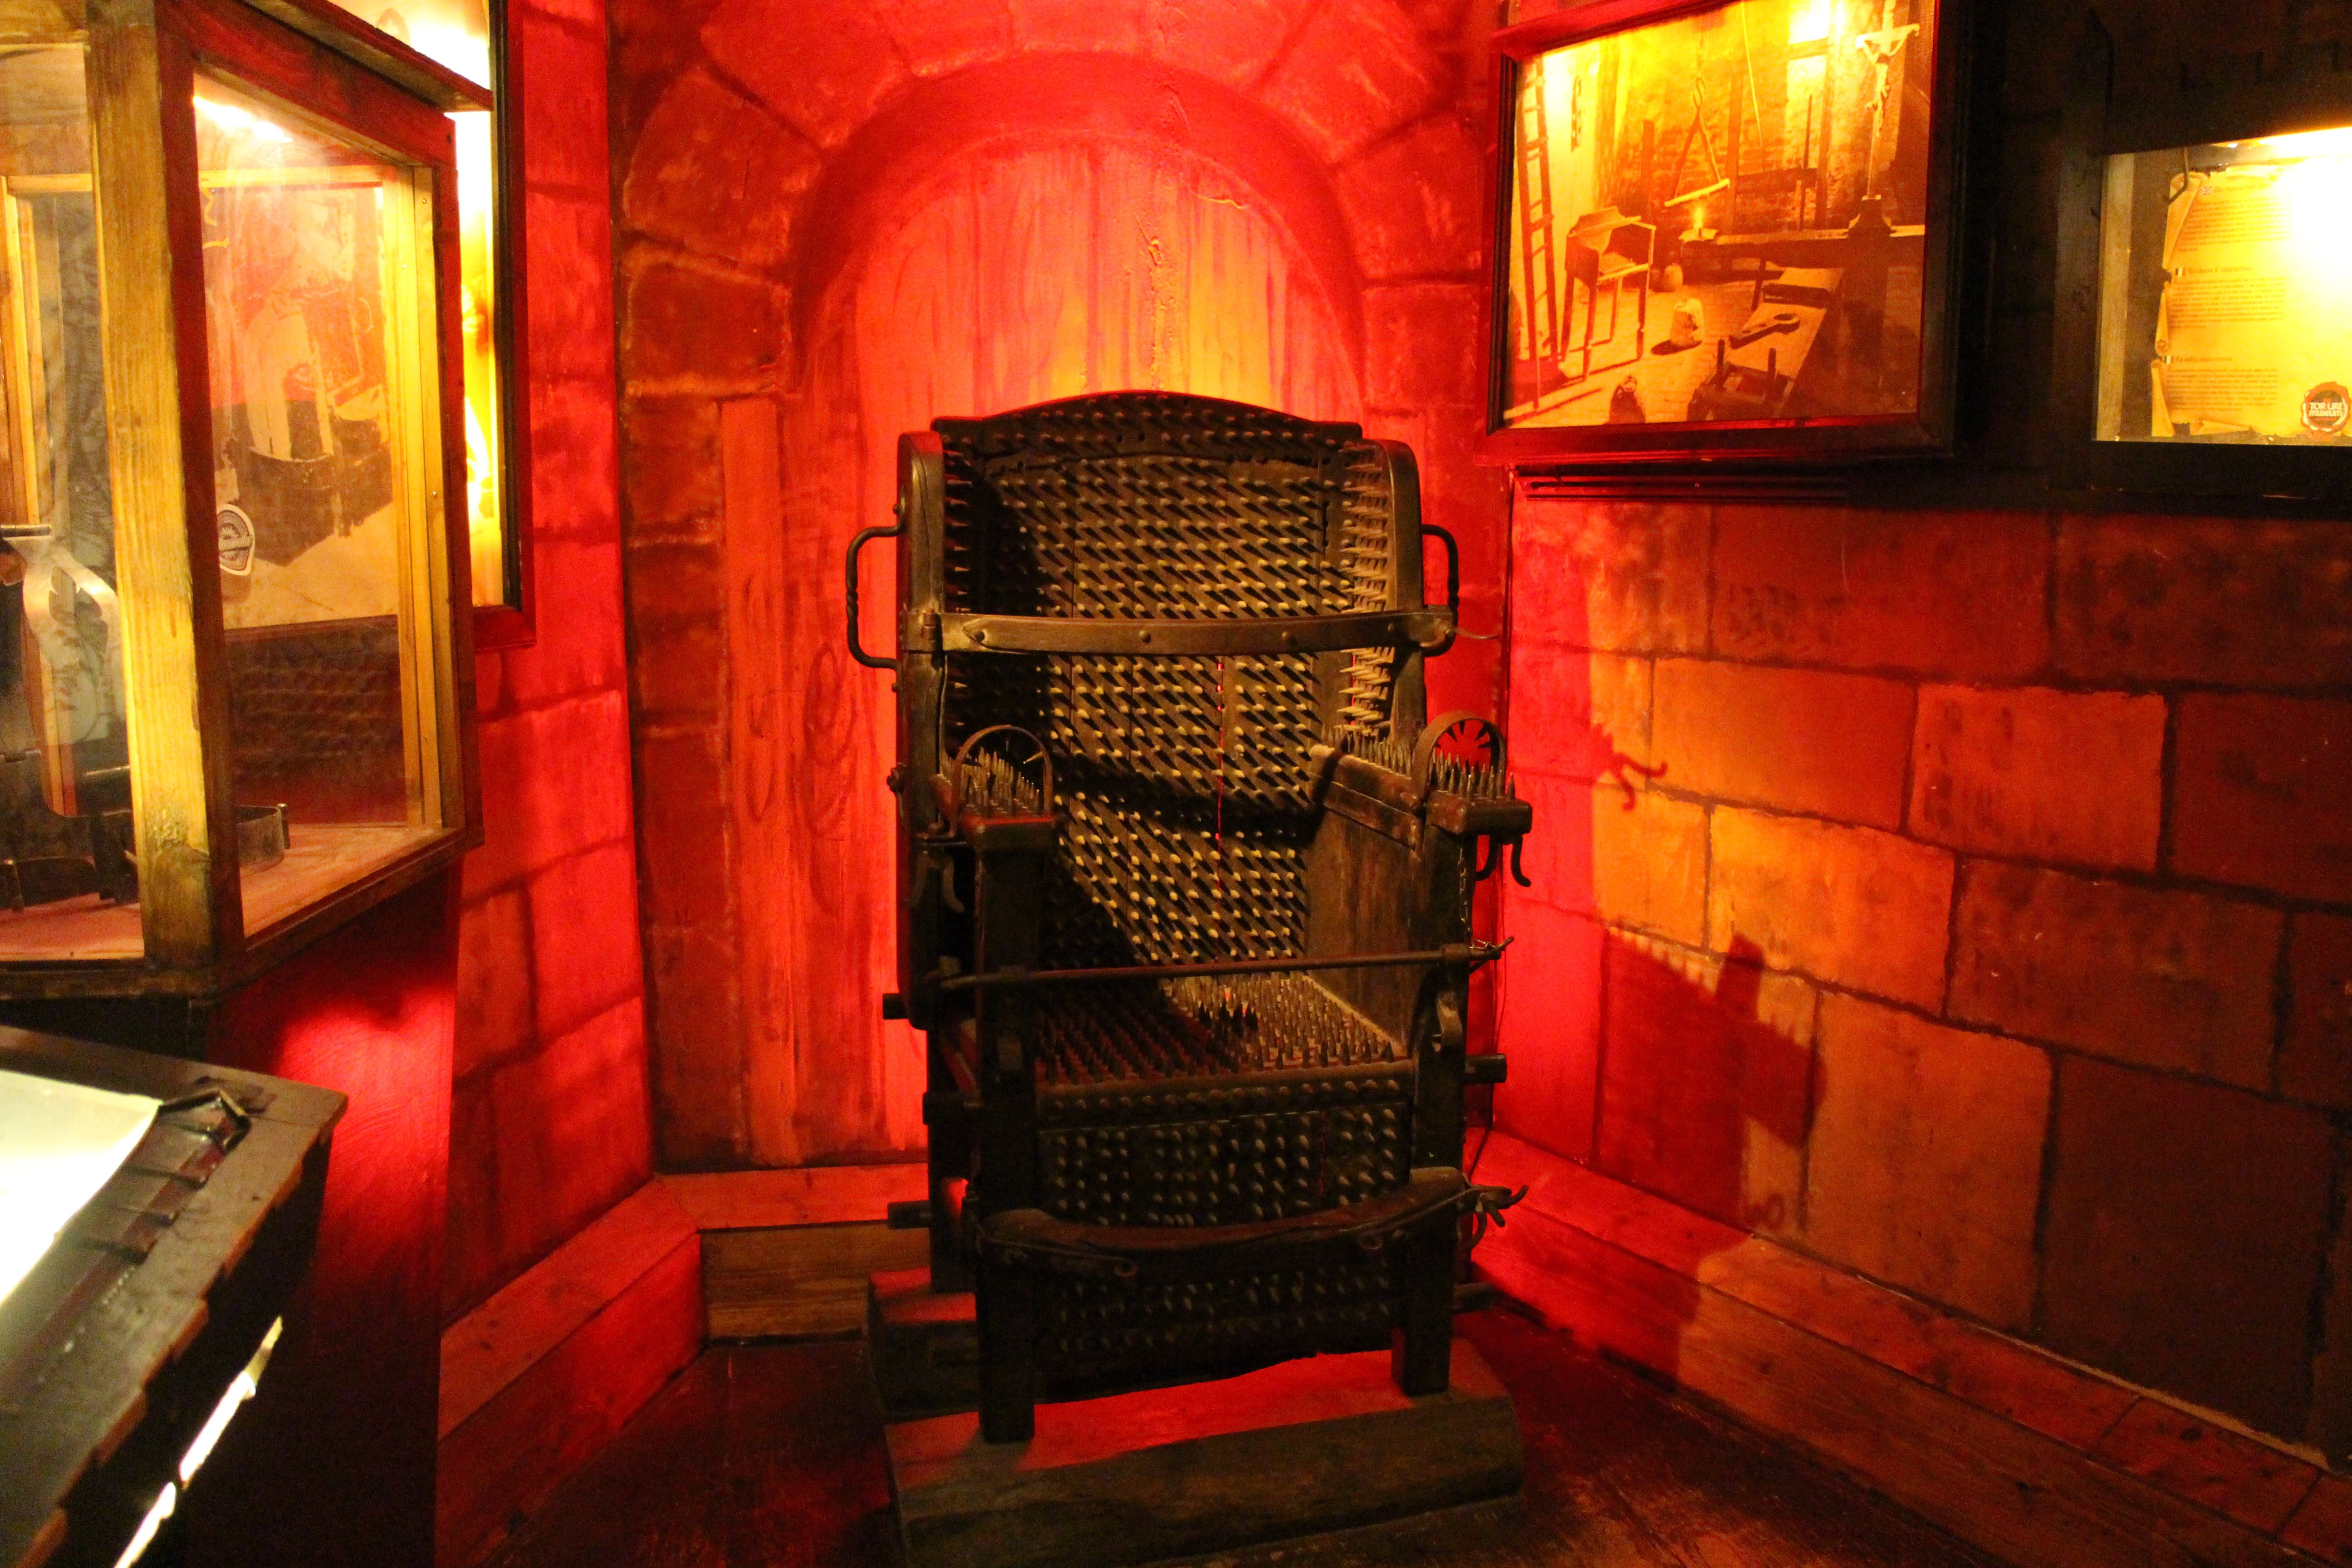 The Torture Museum